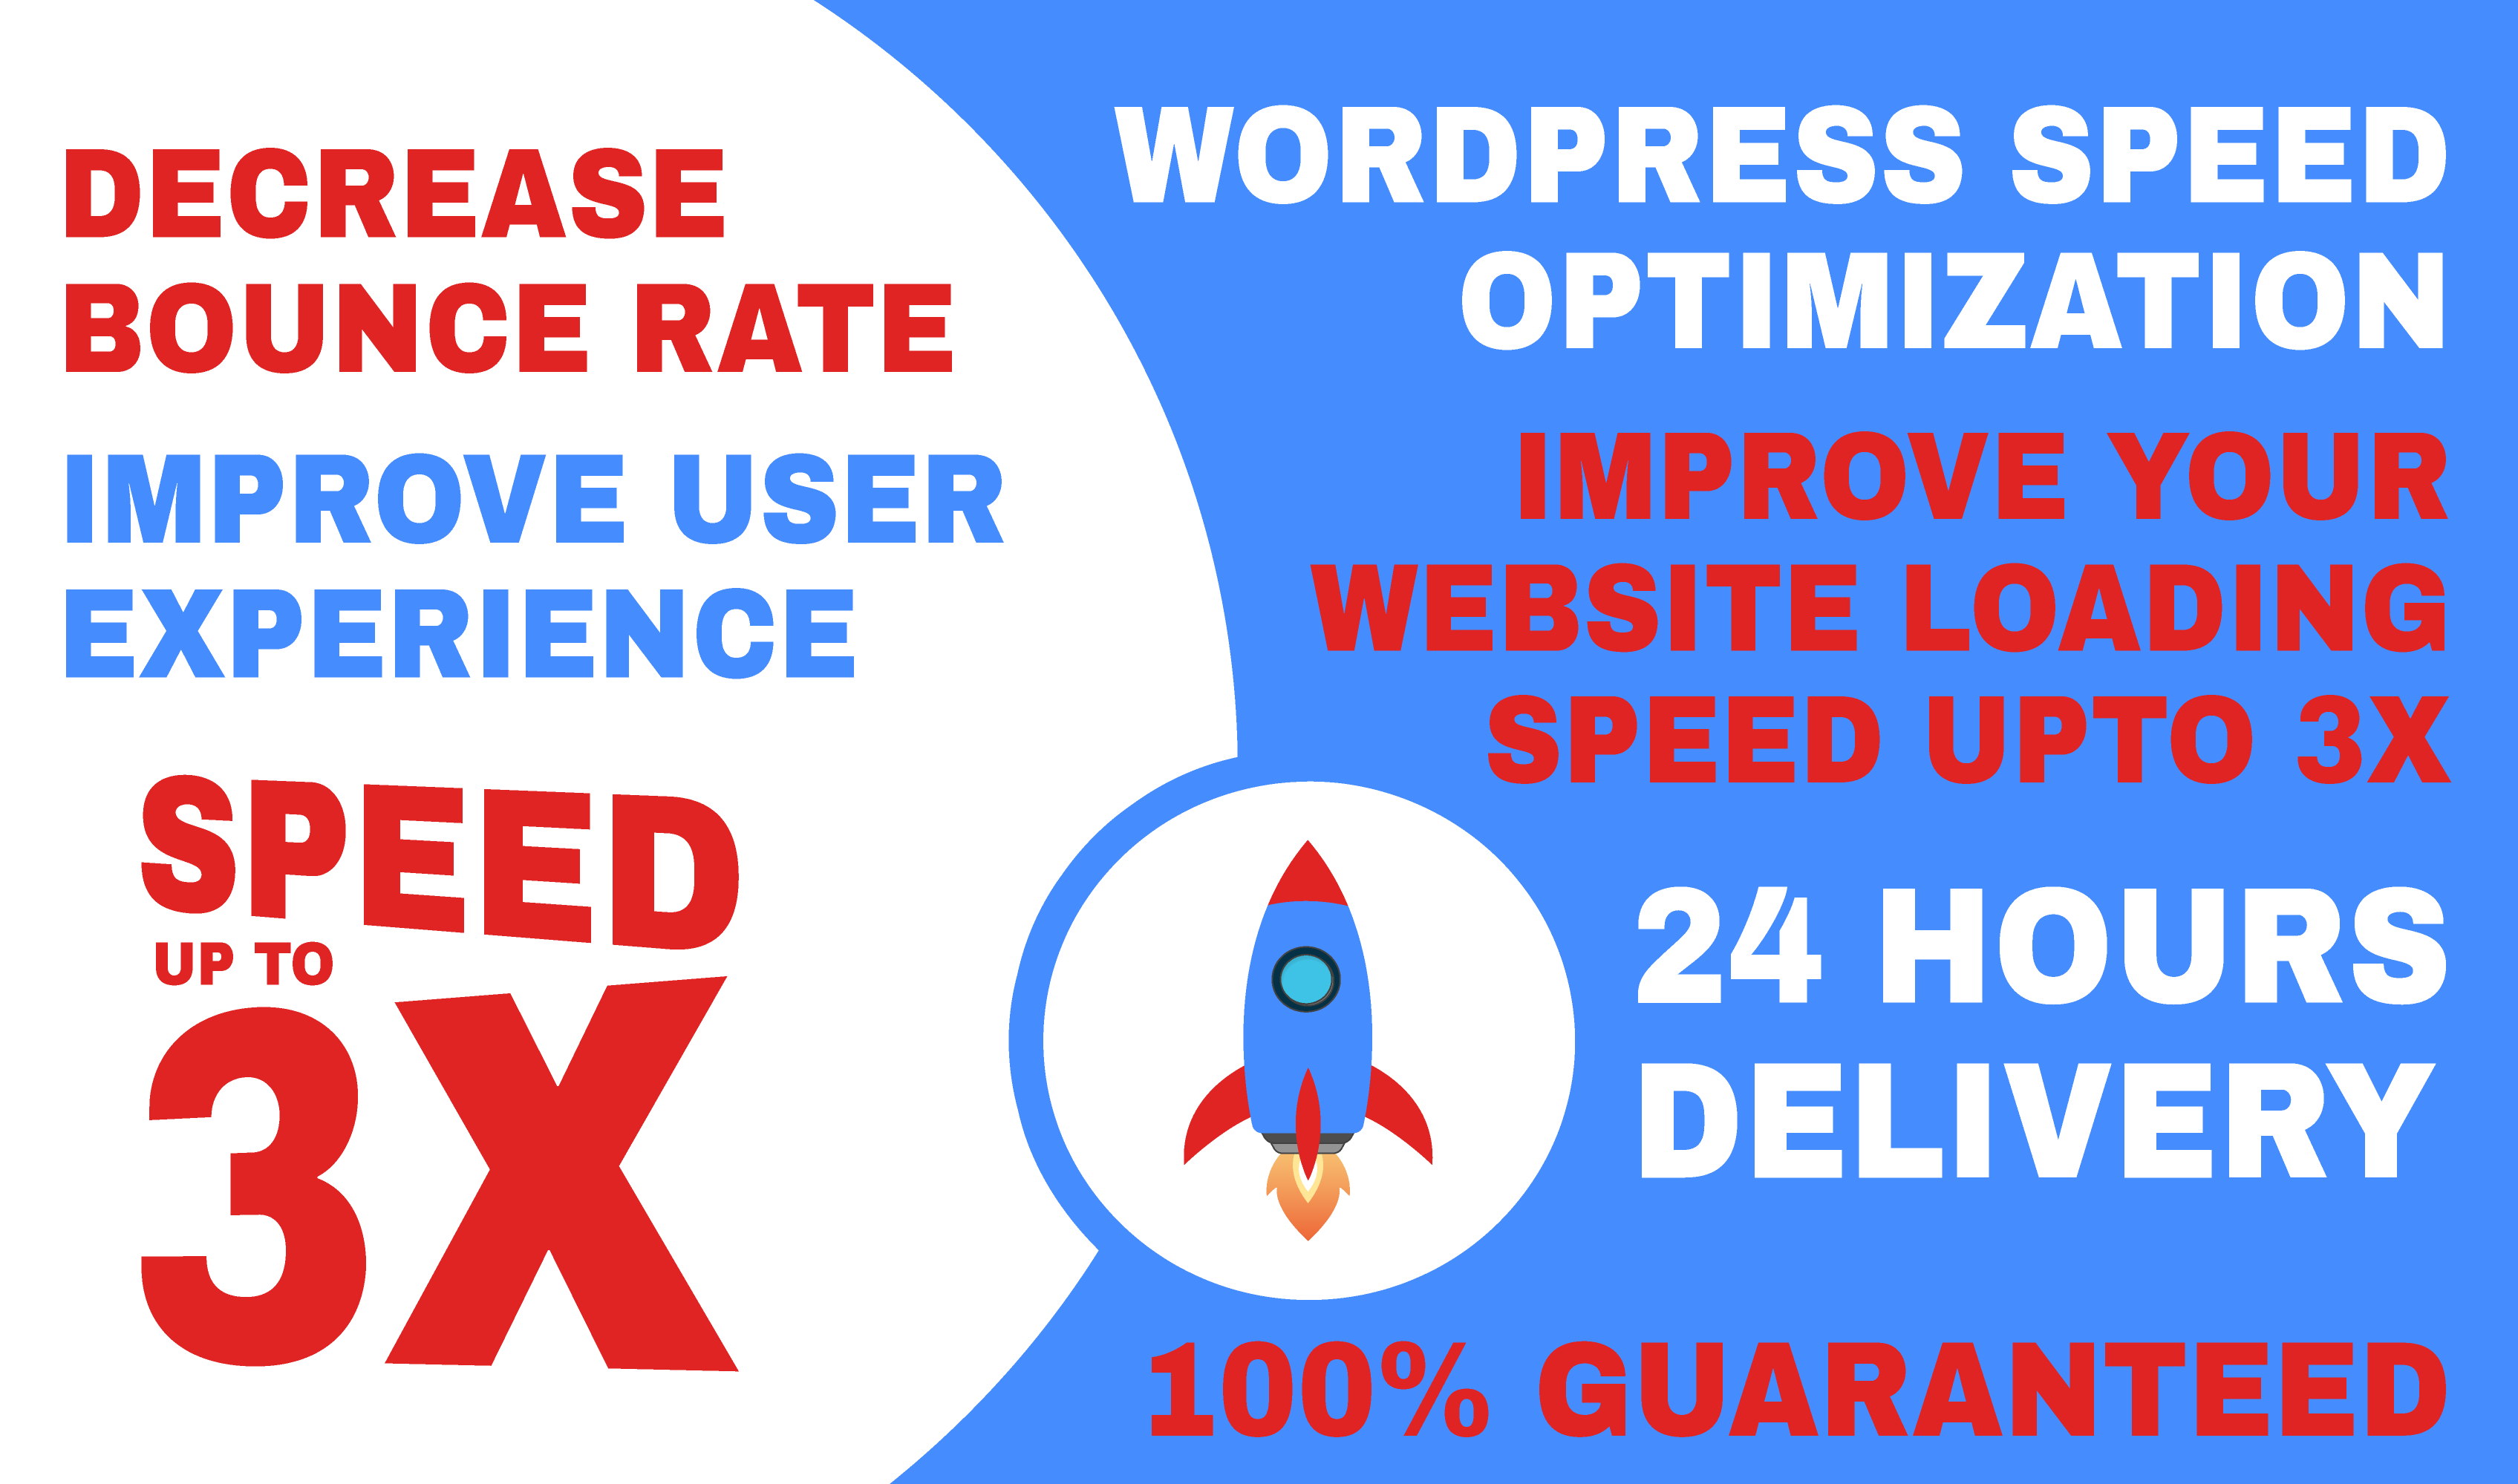 Wordpress Speed Optimization and Speed Up your Website in 12 hours